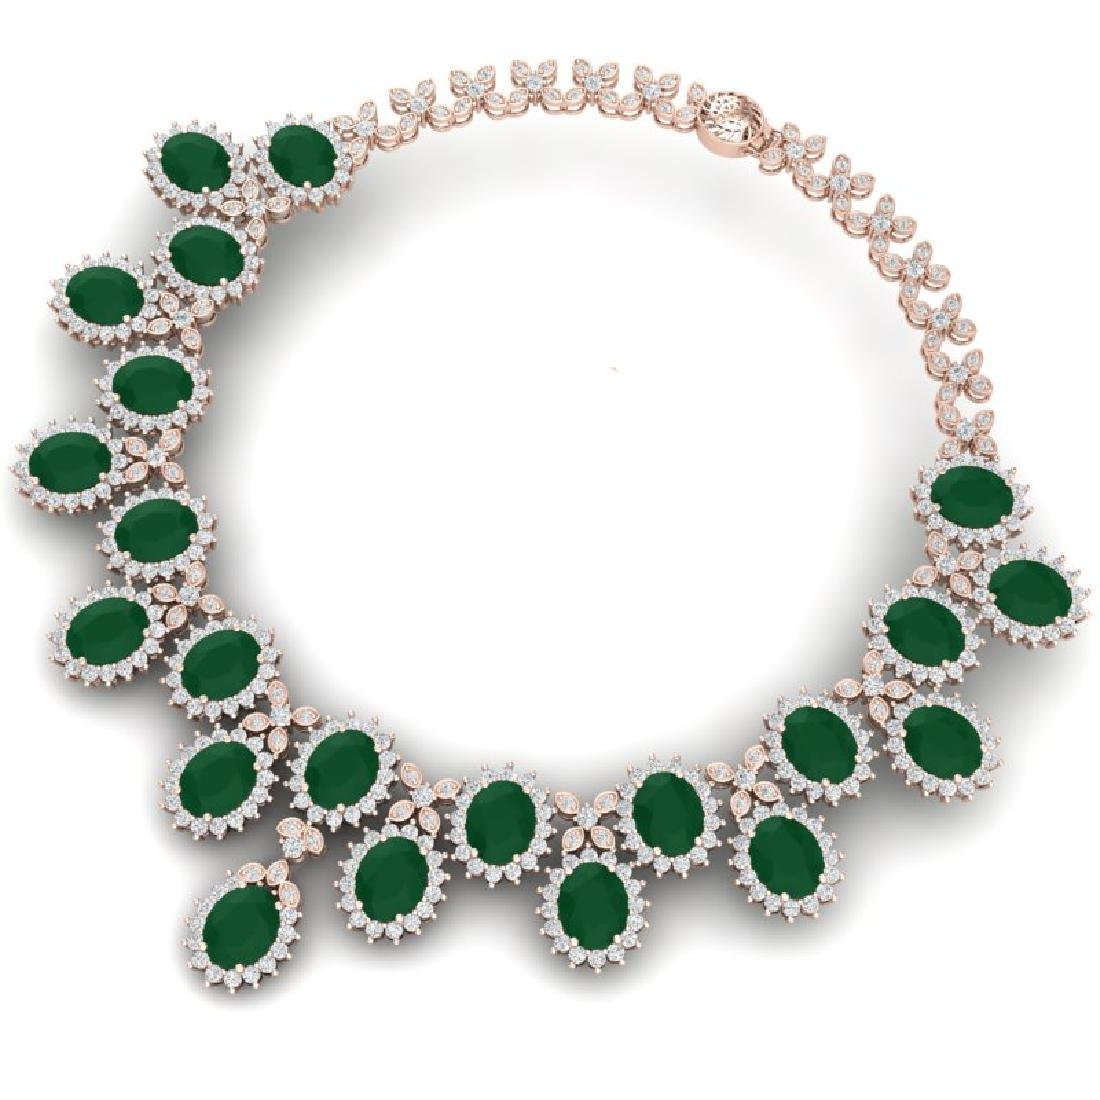 81 CTW Royalty Emerald & VS Diamond Necklace 18K Rose - 2